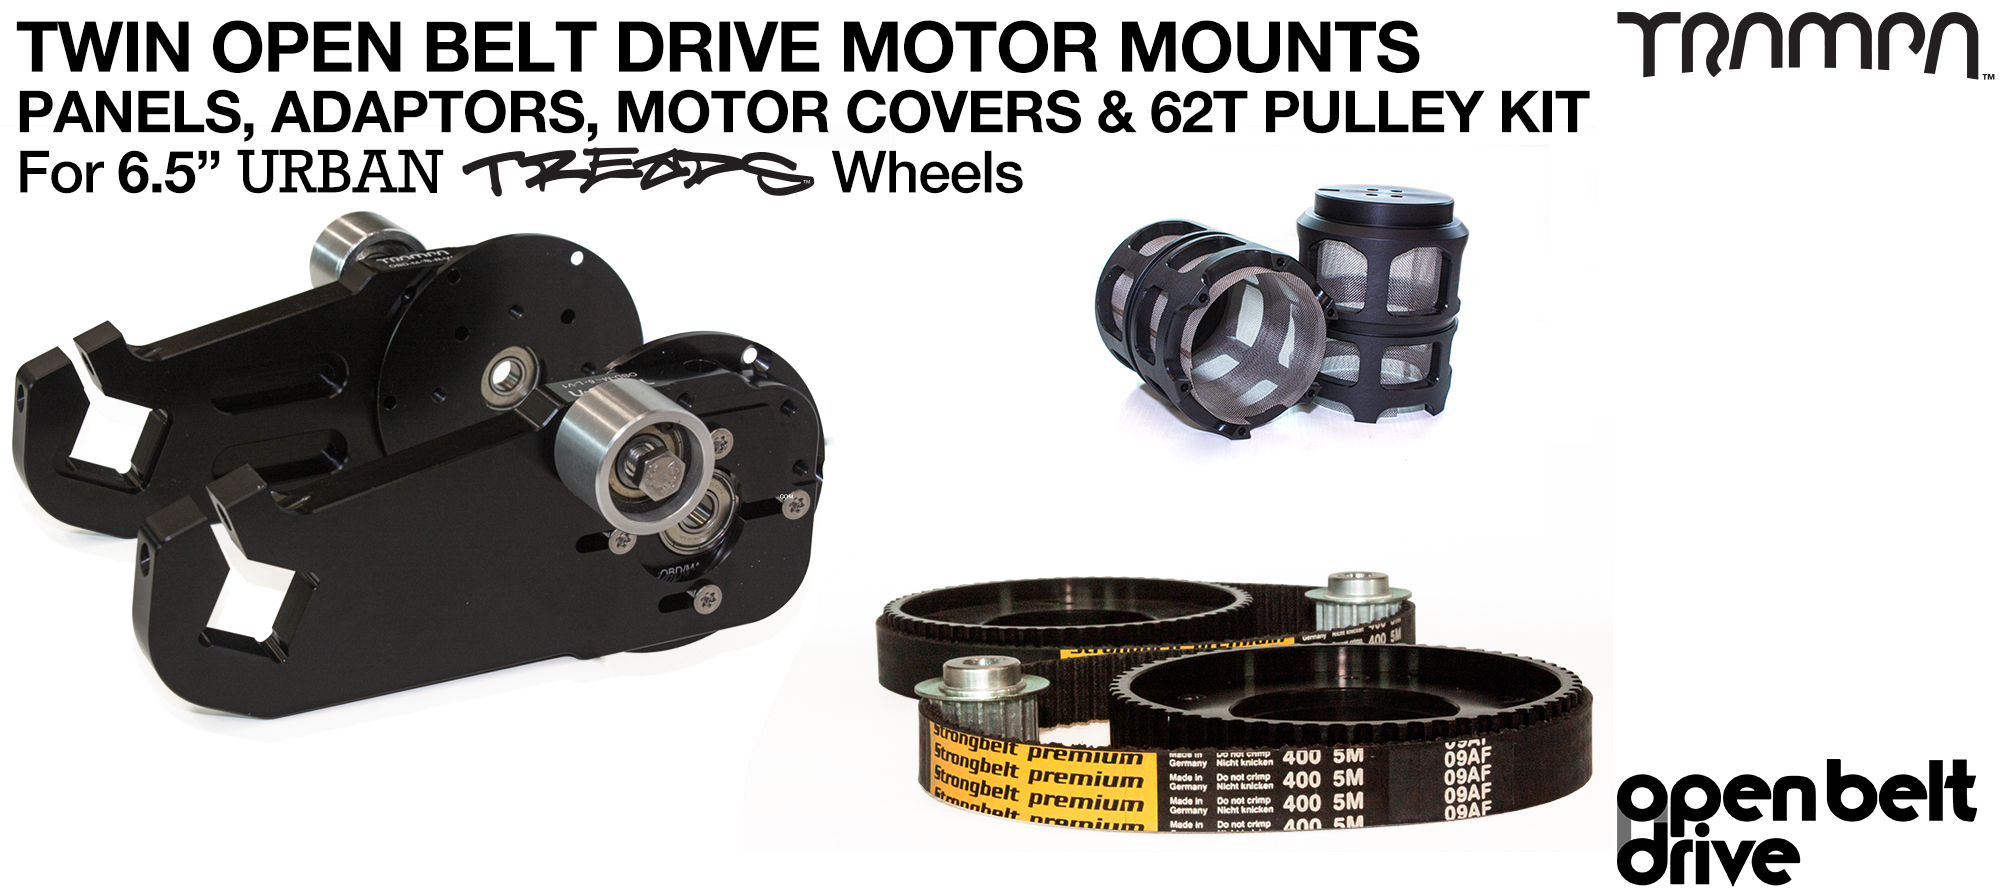 66T OBD Motor Mount with 62T Pulley kit & Motor Filters - TWIN